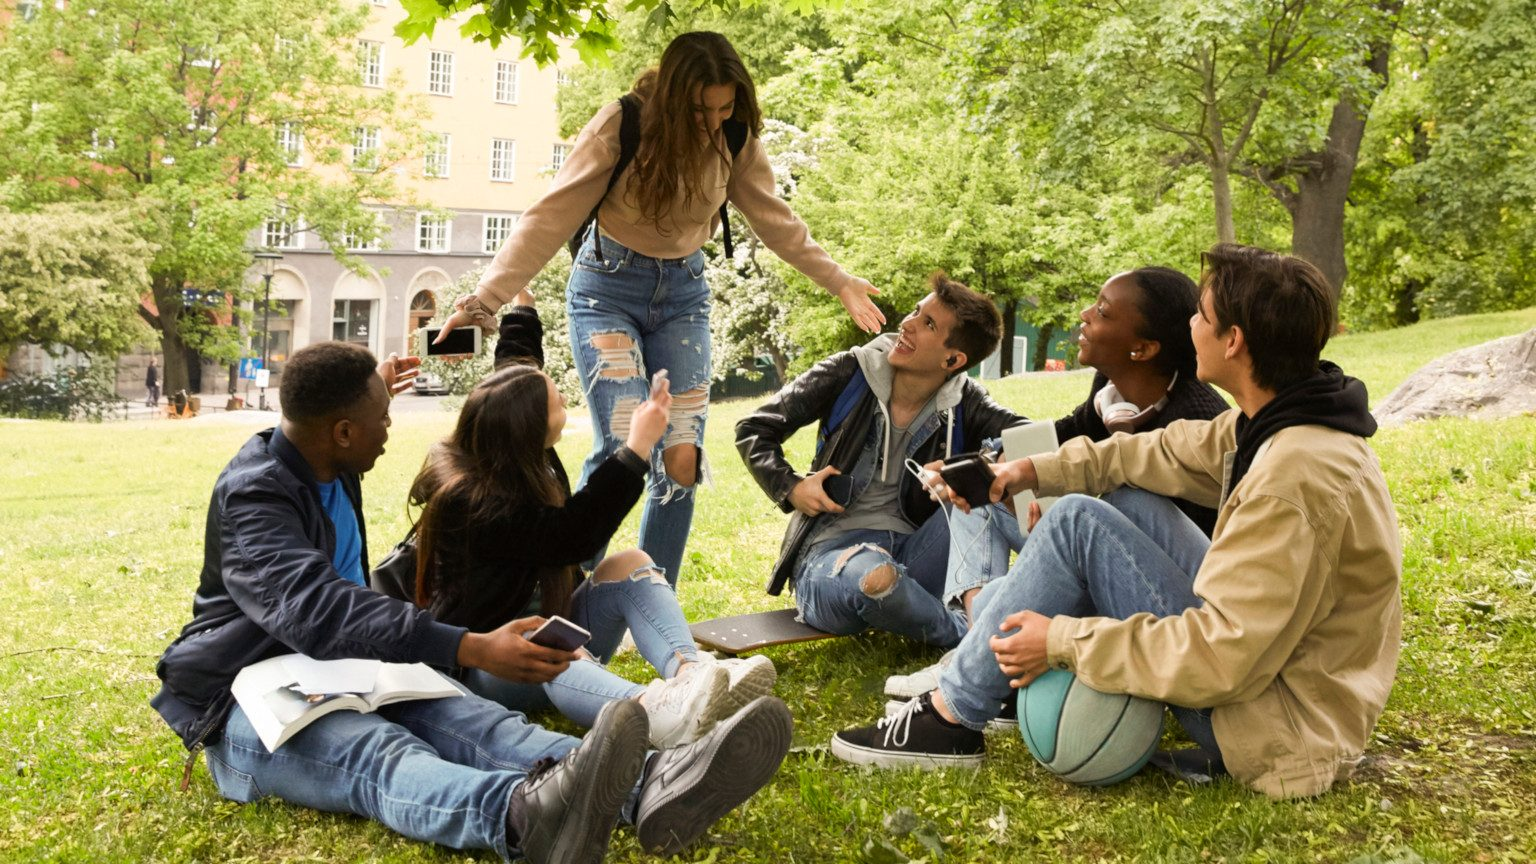 A group of teenagers sitting together outside on grass